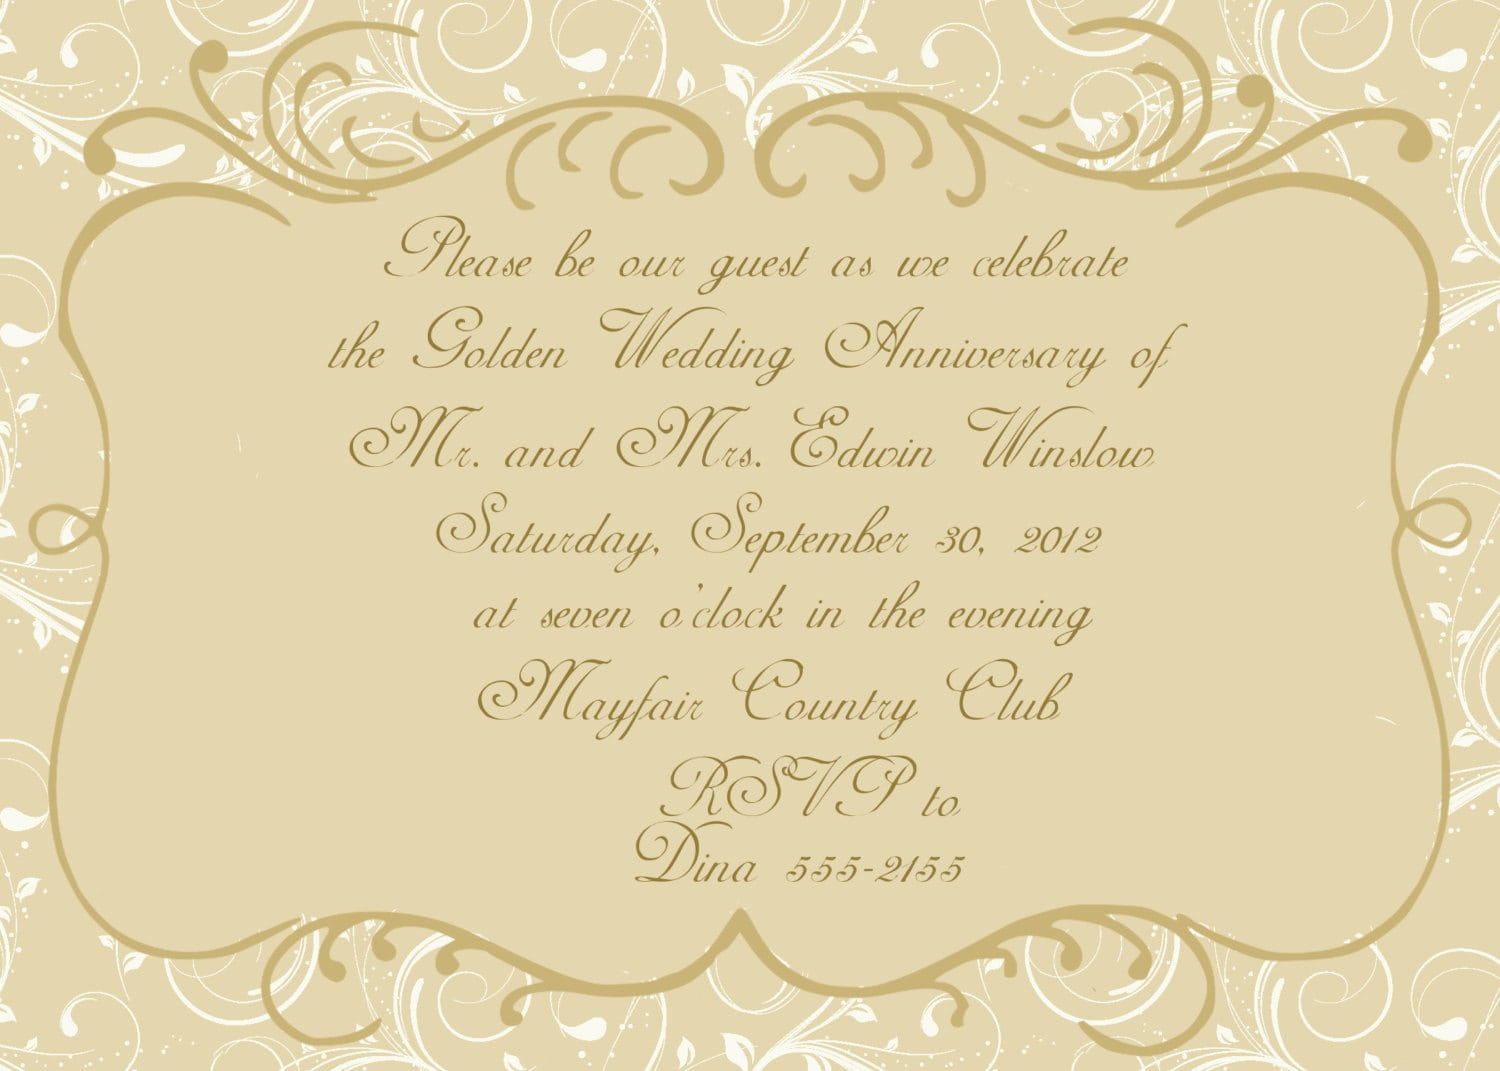 17 Best Images About Anniversary Invitations On Pinterest